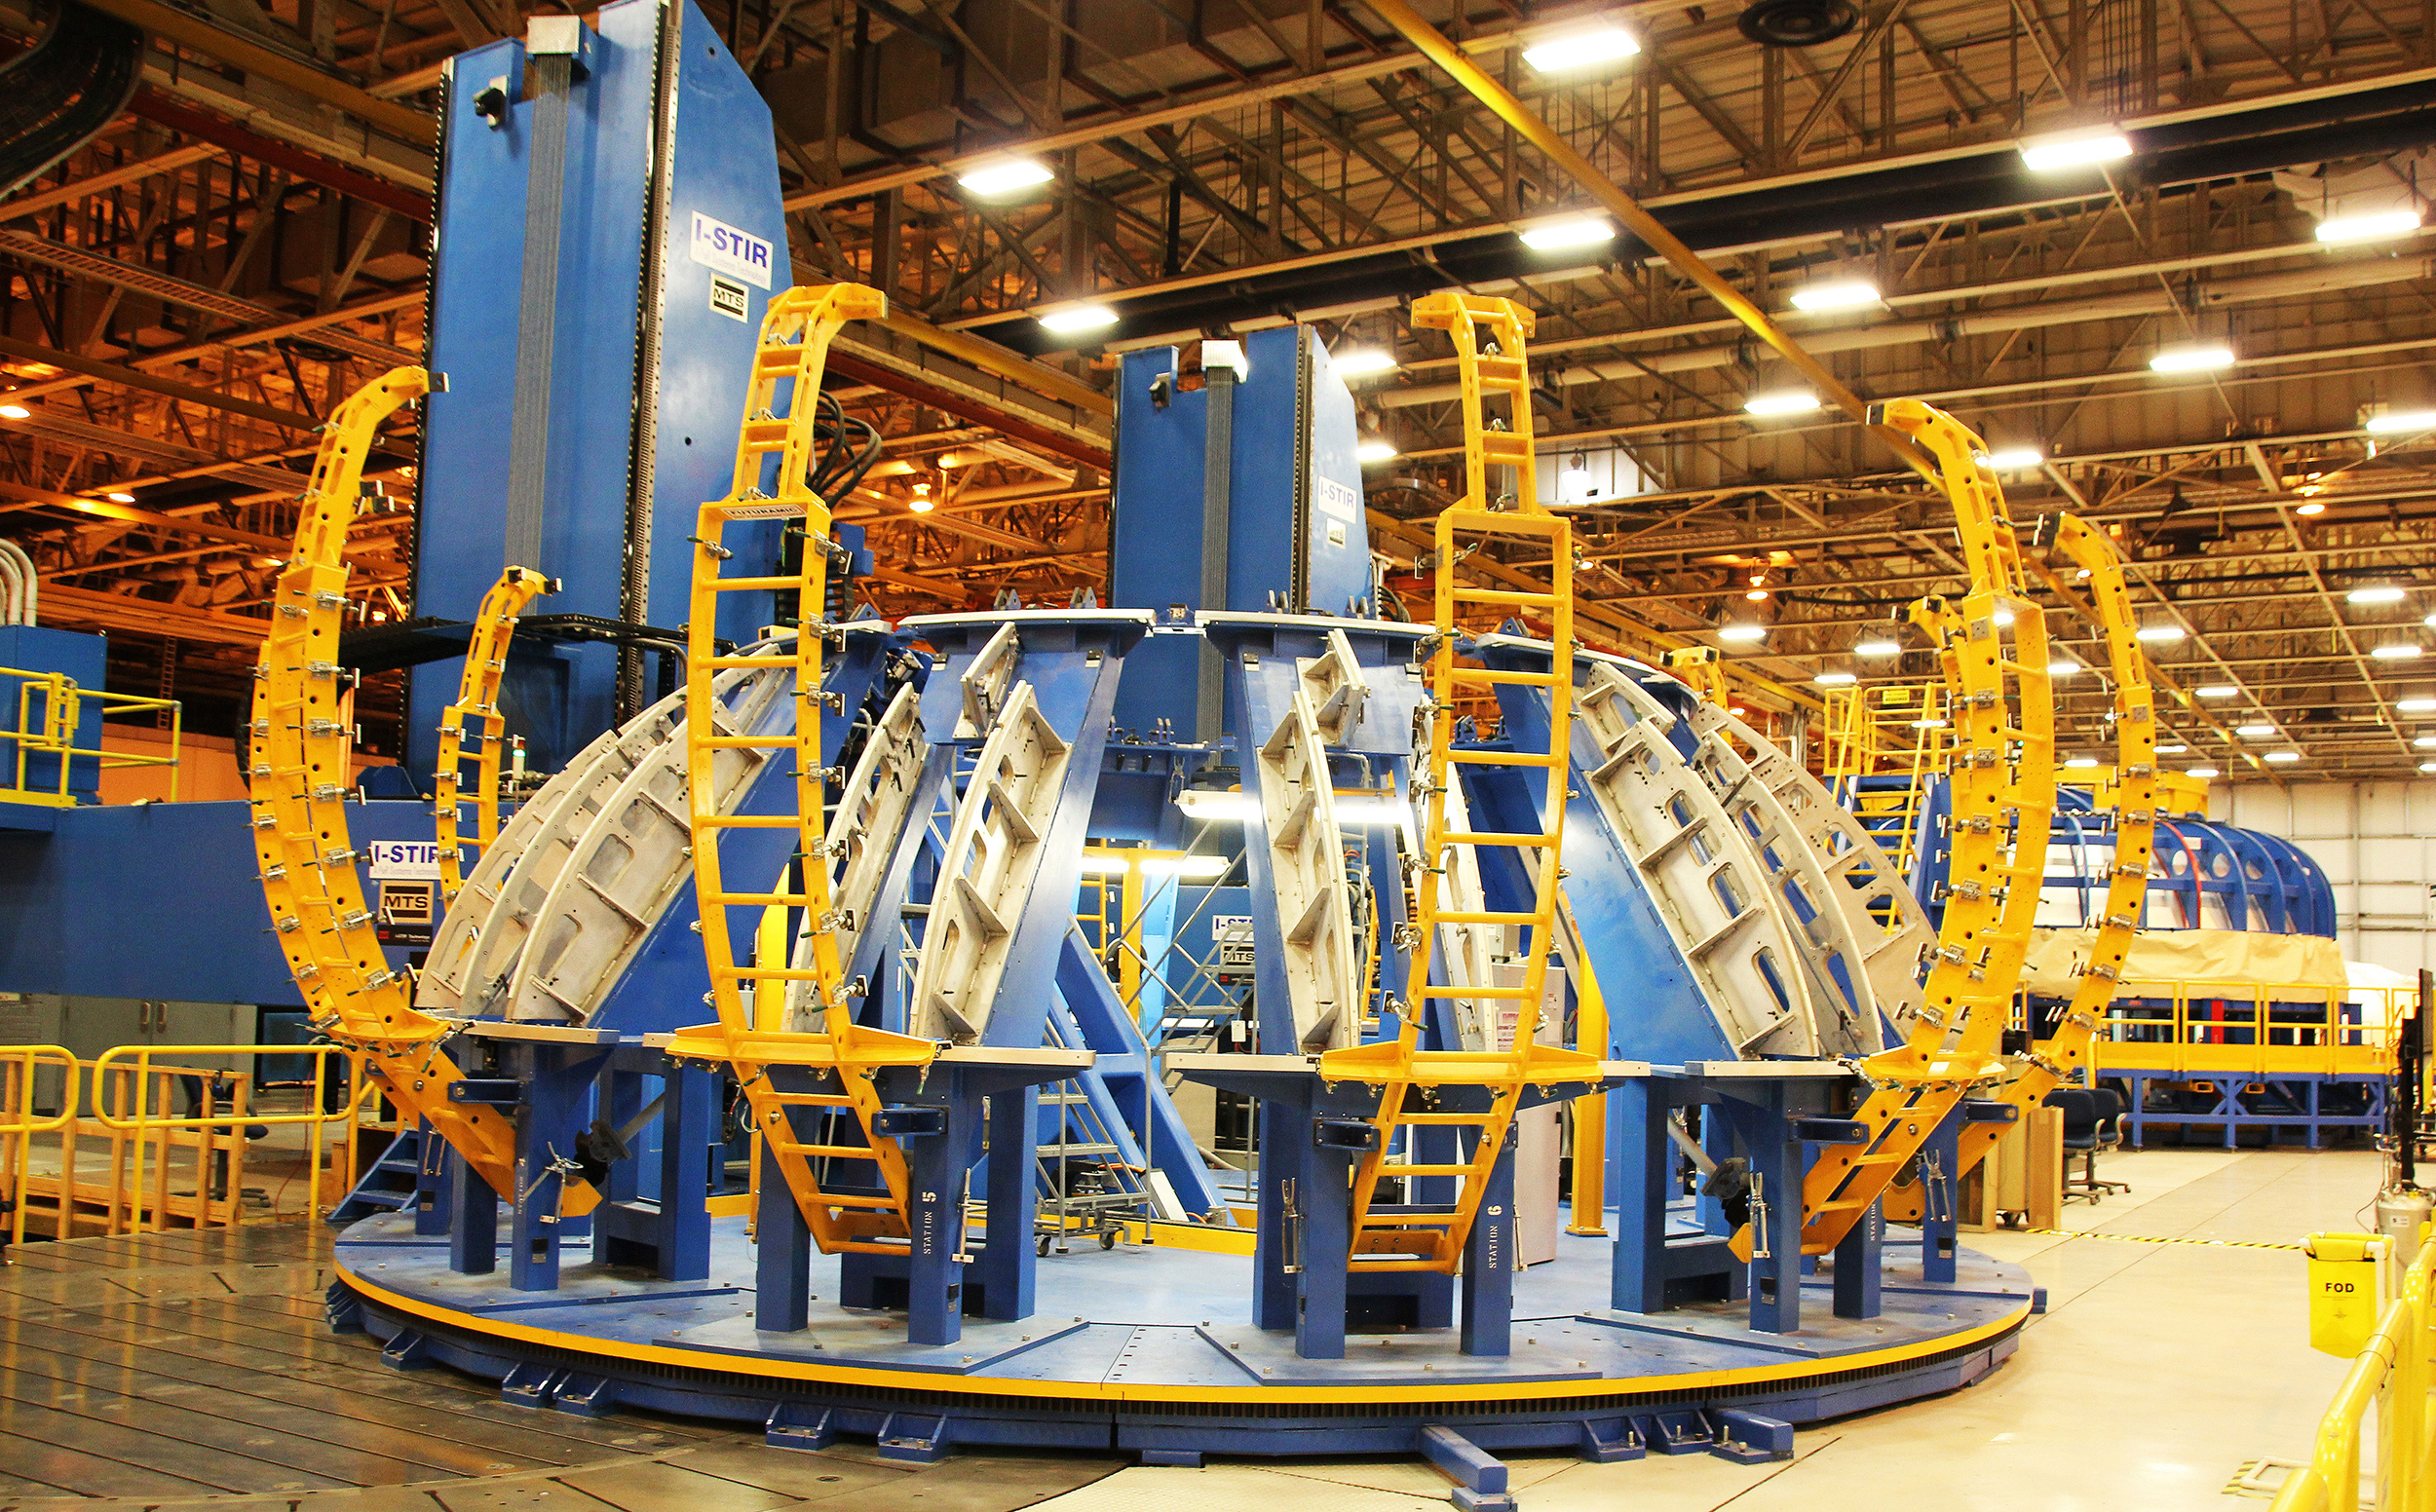 The Gore Weld Tool (foreground) and Circumferential Dome Weld Tool (background) used to fabricate dome segments for the SLS liquid hydrogen and oxygen core stage tanks via vertical friction stir welding operations at NASA's Michoud Assembly Facility in New Orleans. Credit: Ken Kremer